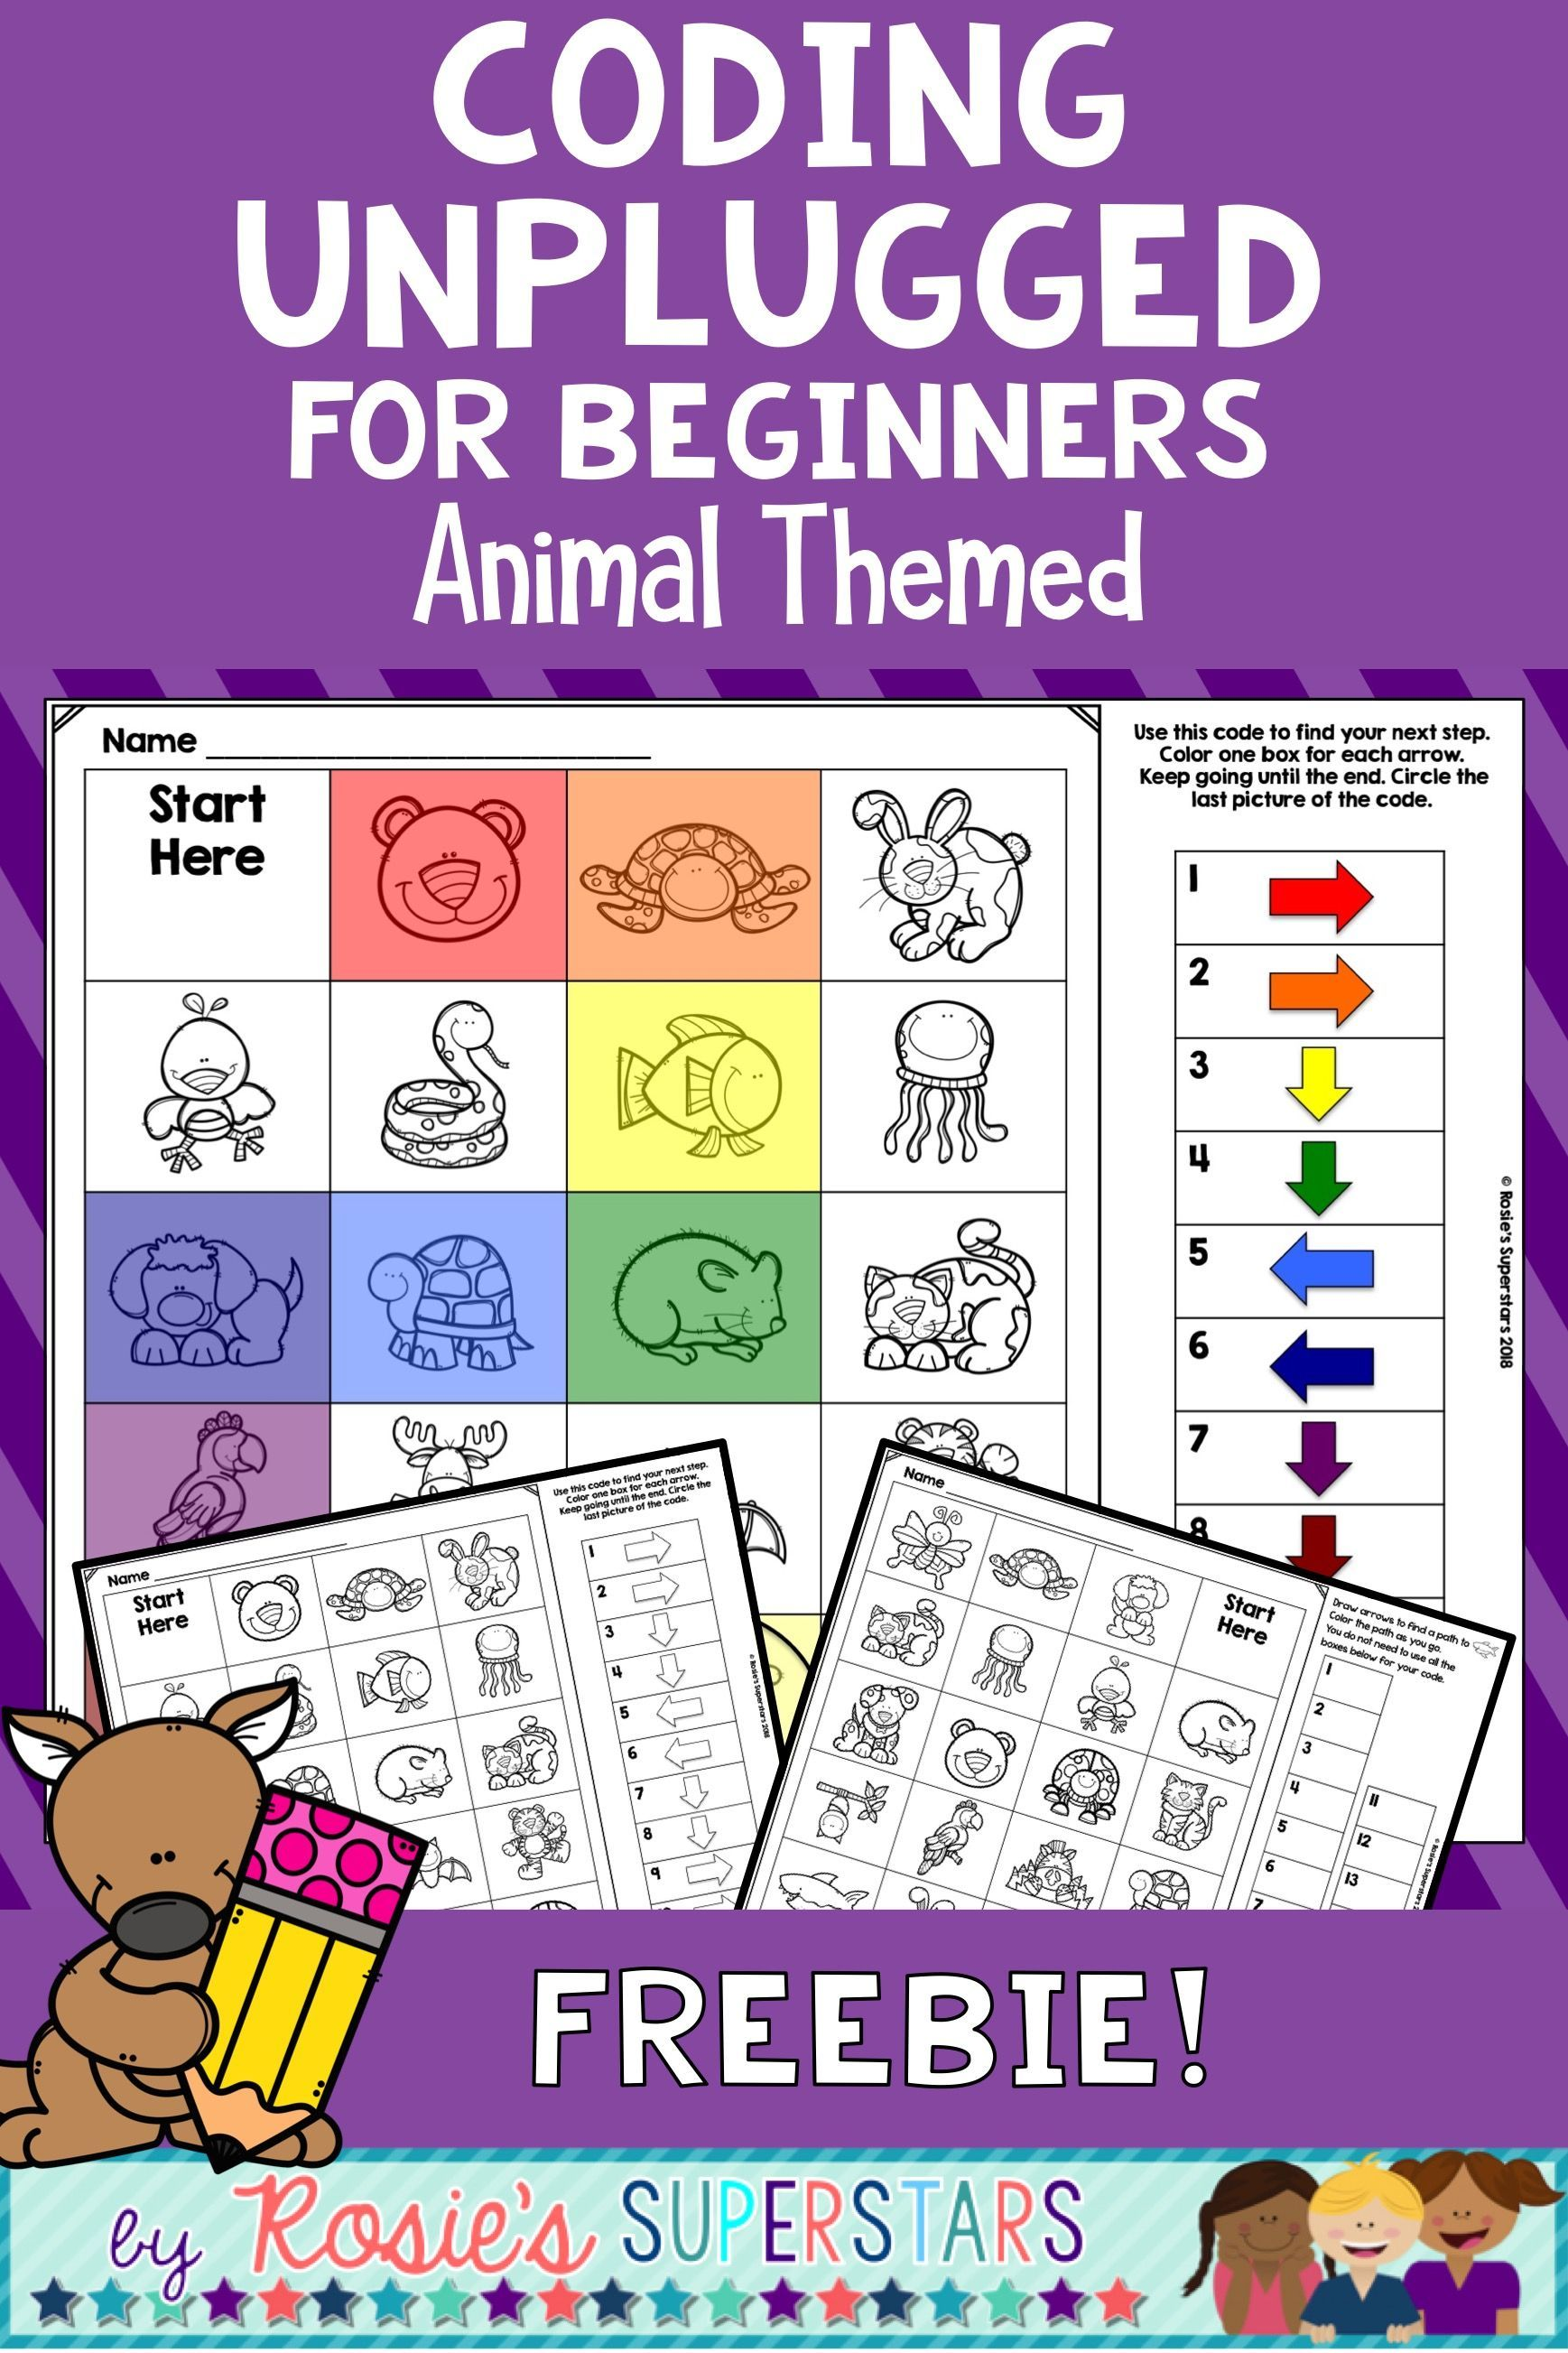 Animal Themed Unplugged Coding For Beginners Freebie